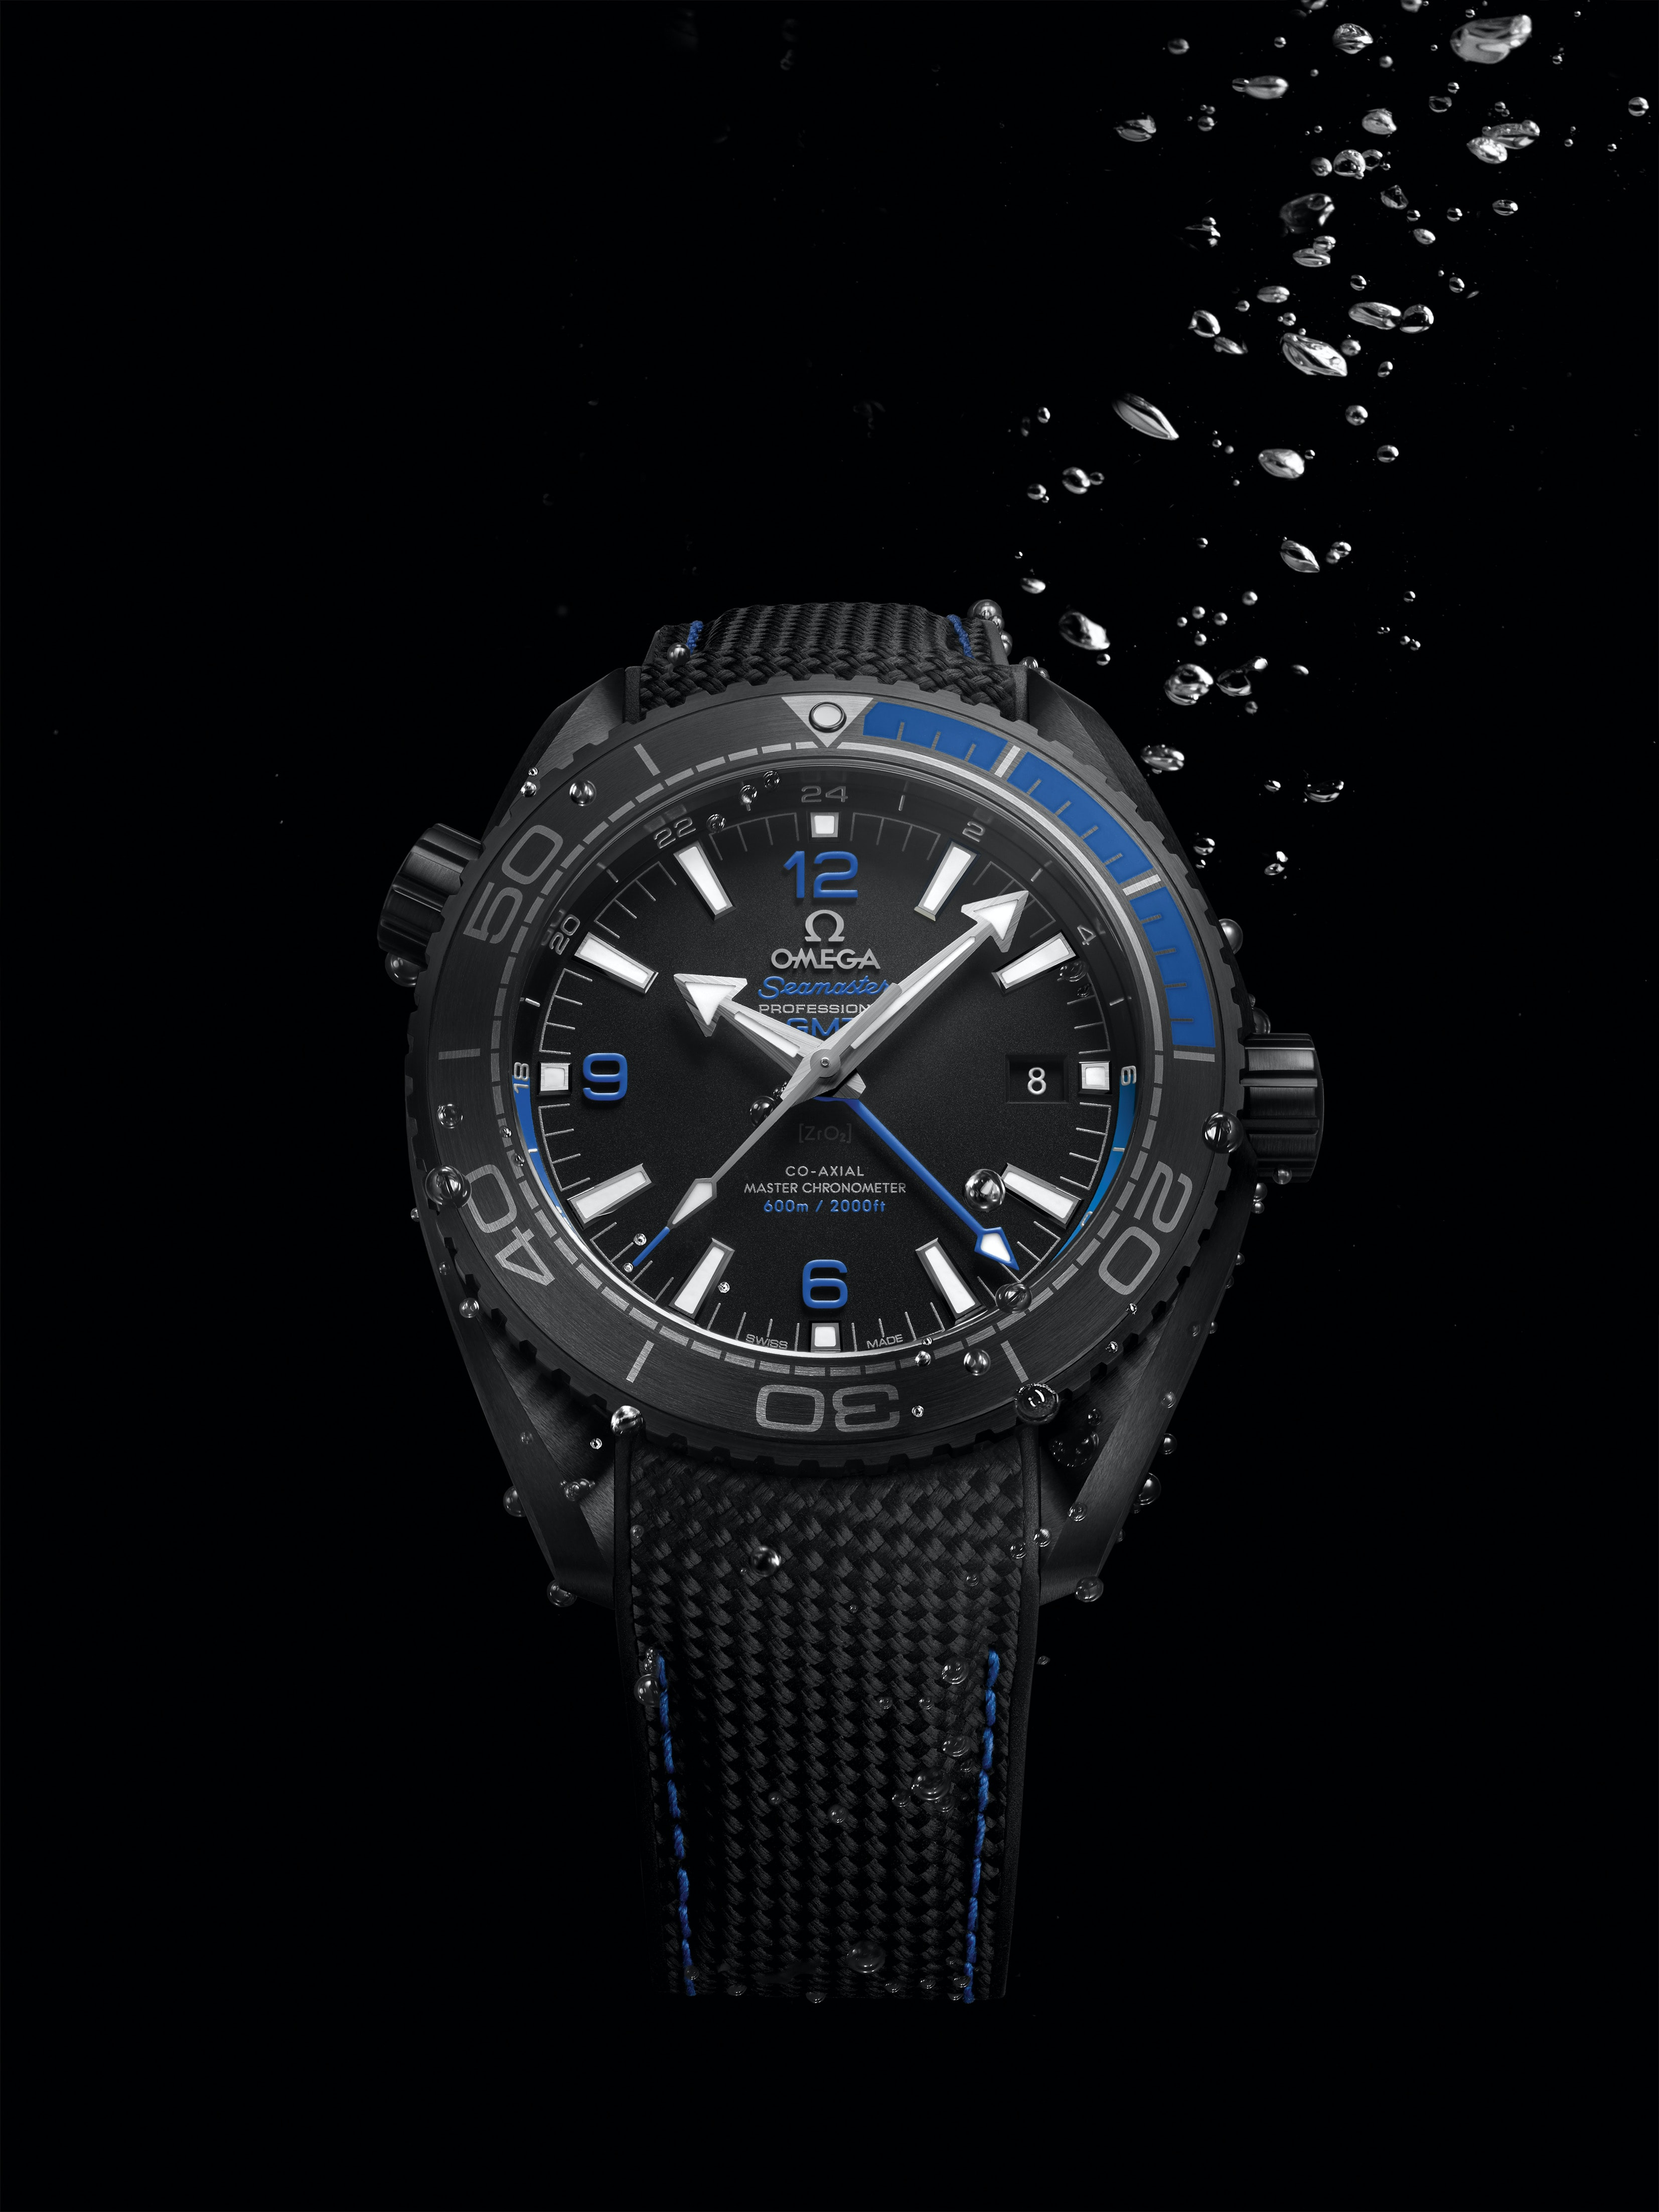 Introducing: The Omega Planet Ocean Deep Black Collection (Full Specs & Official Pricing) Introducing: The Omega Planet Ocean Deep Black Collection (Full Specs & Official Pricing) SE Planet Ocean 215